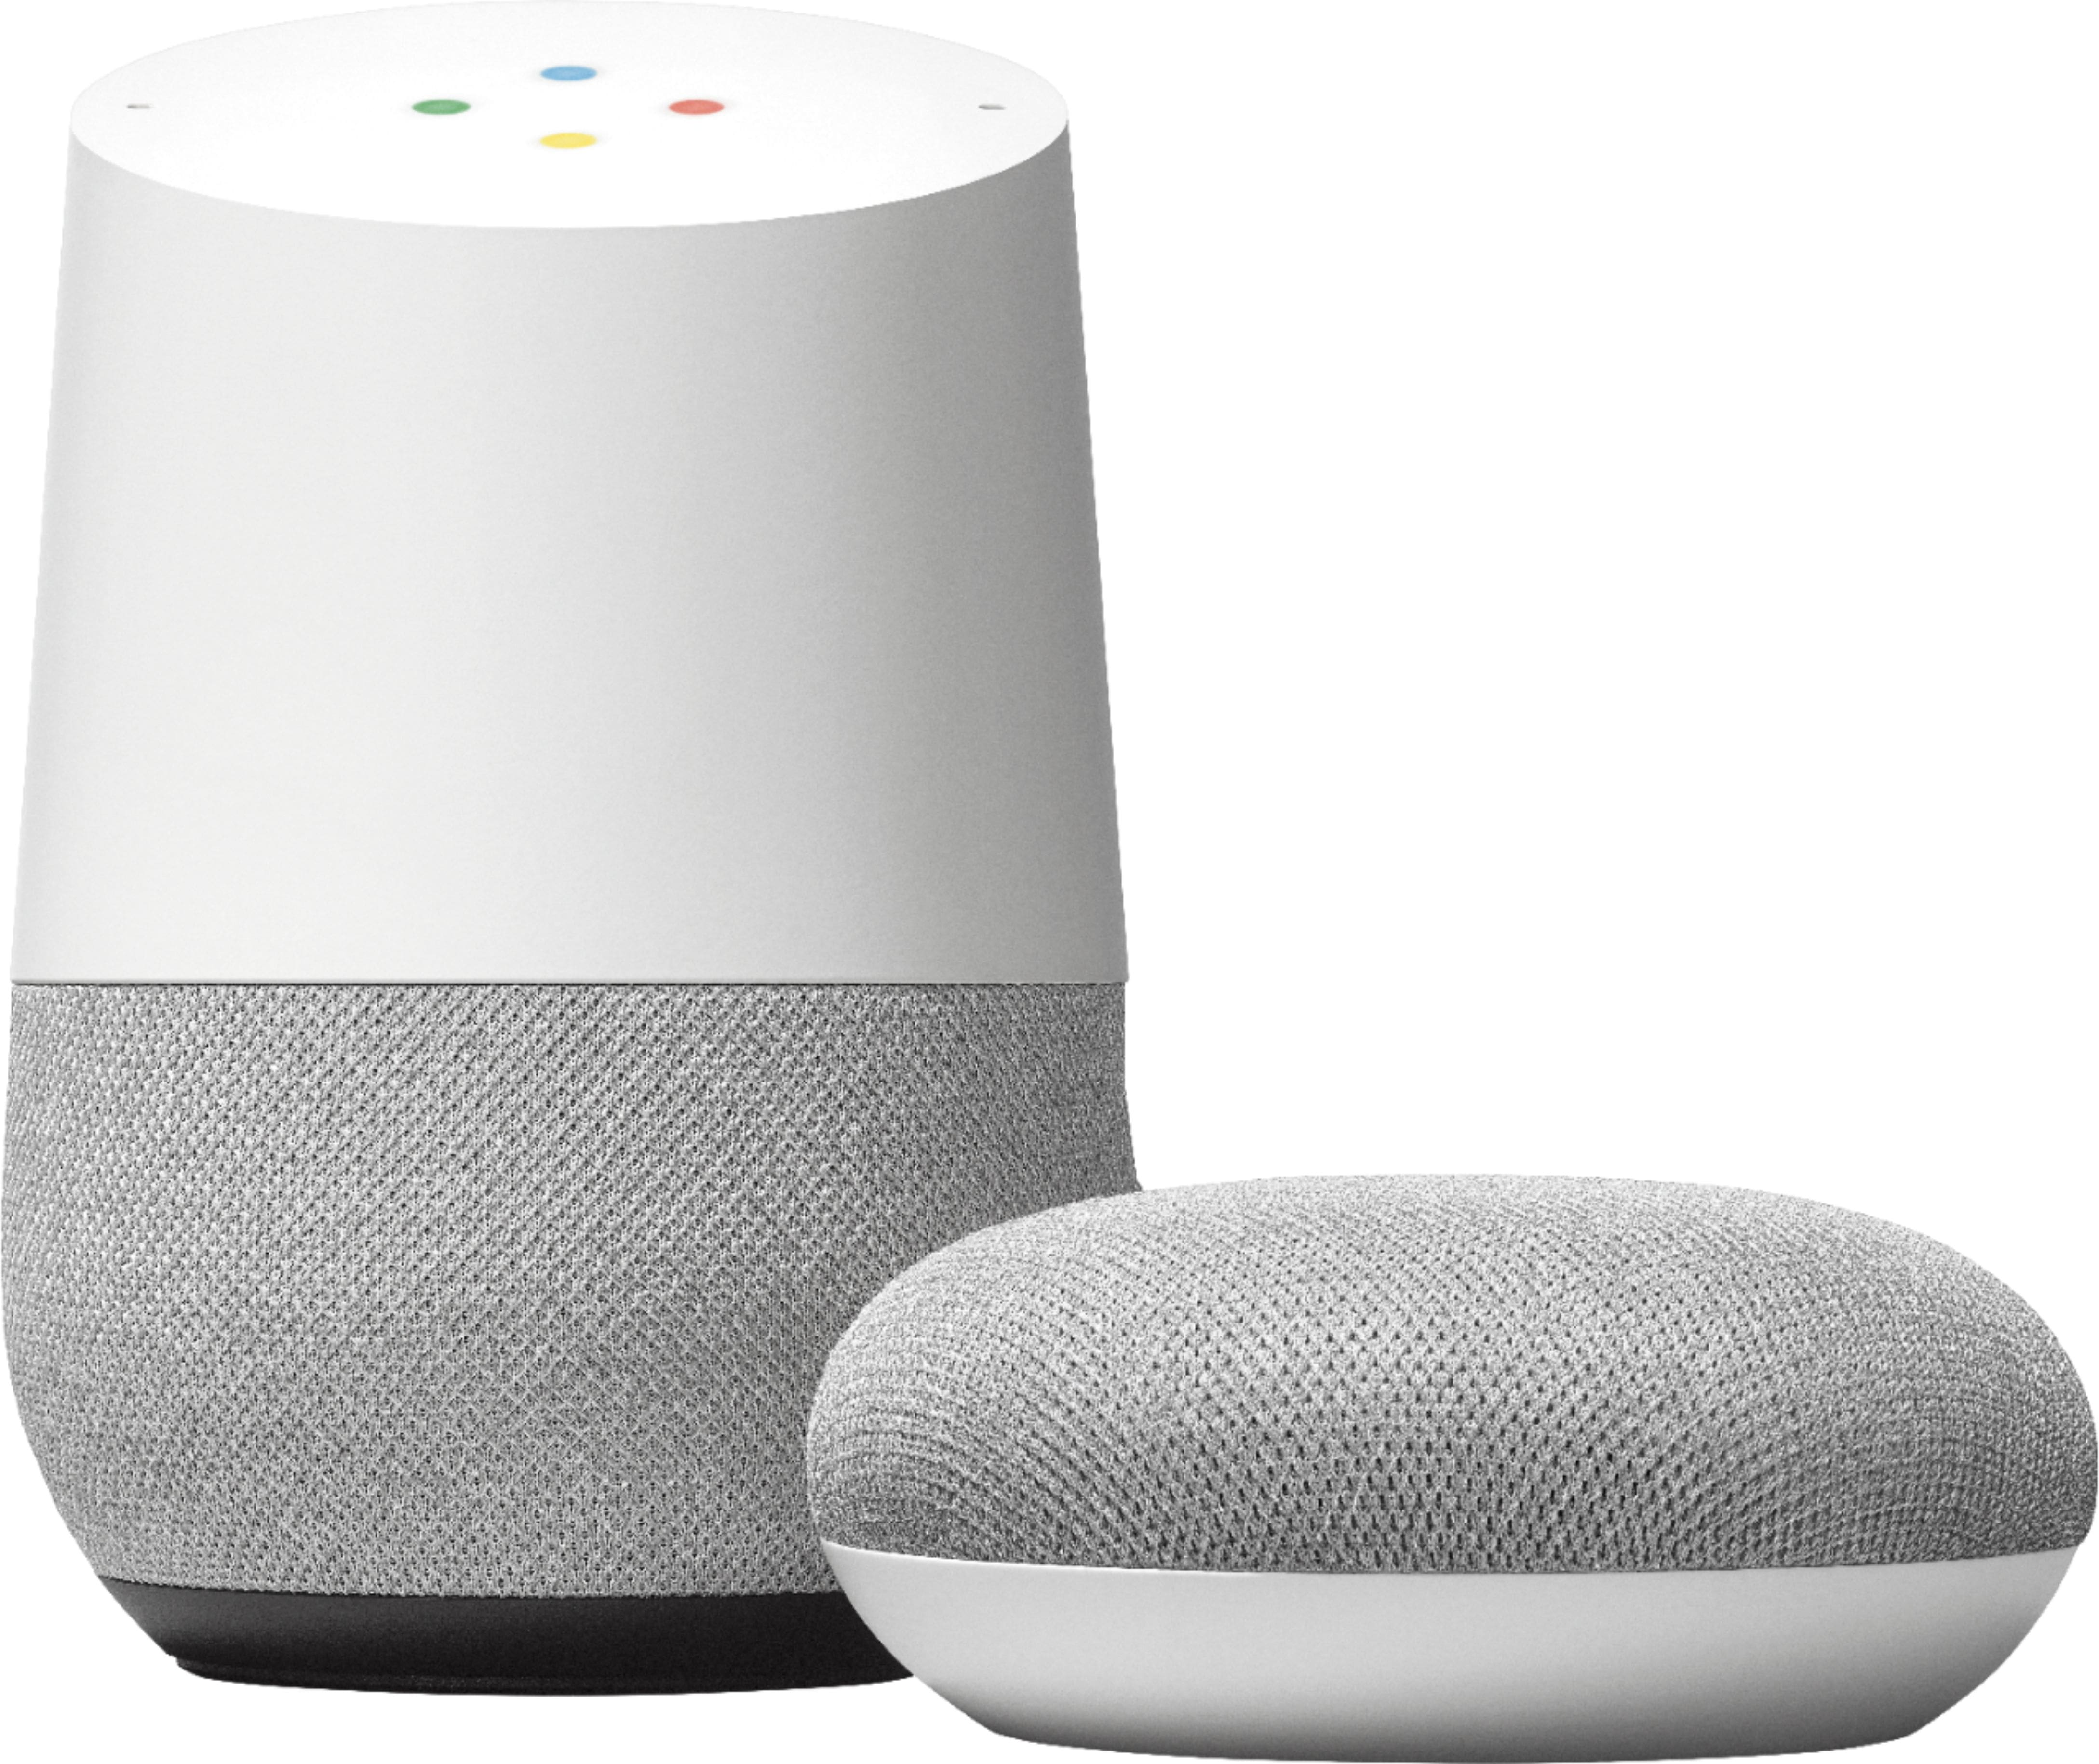 Google Home Mini $5 after ibotta and Best Buy $20 rebate  In